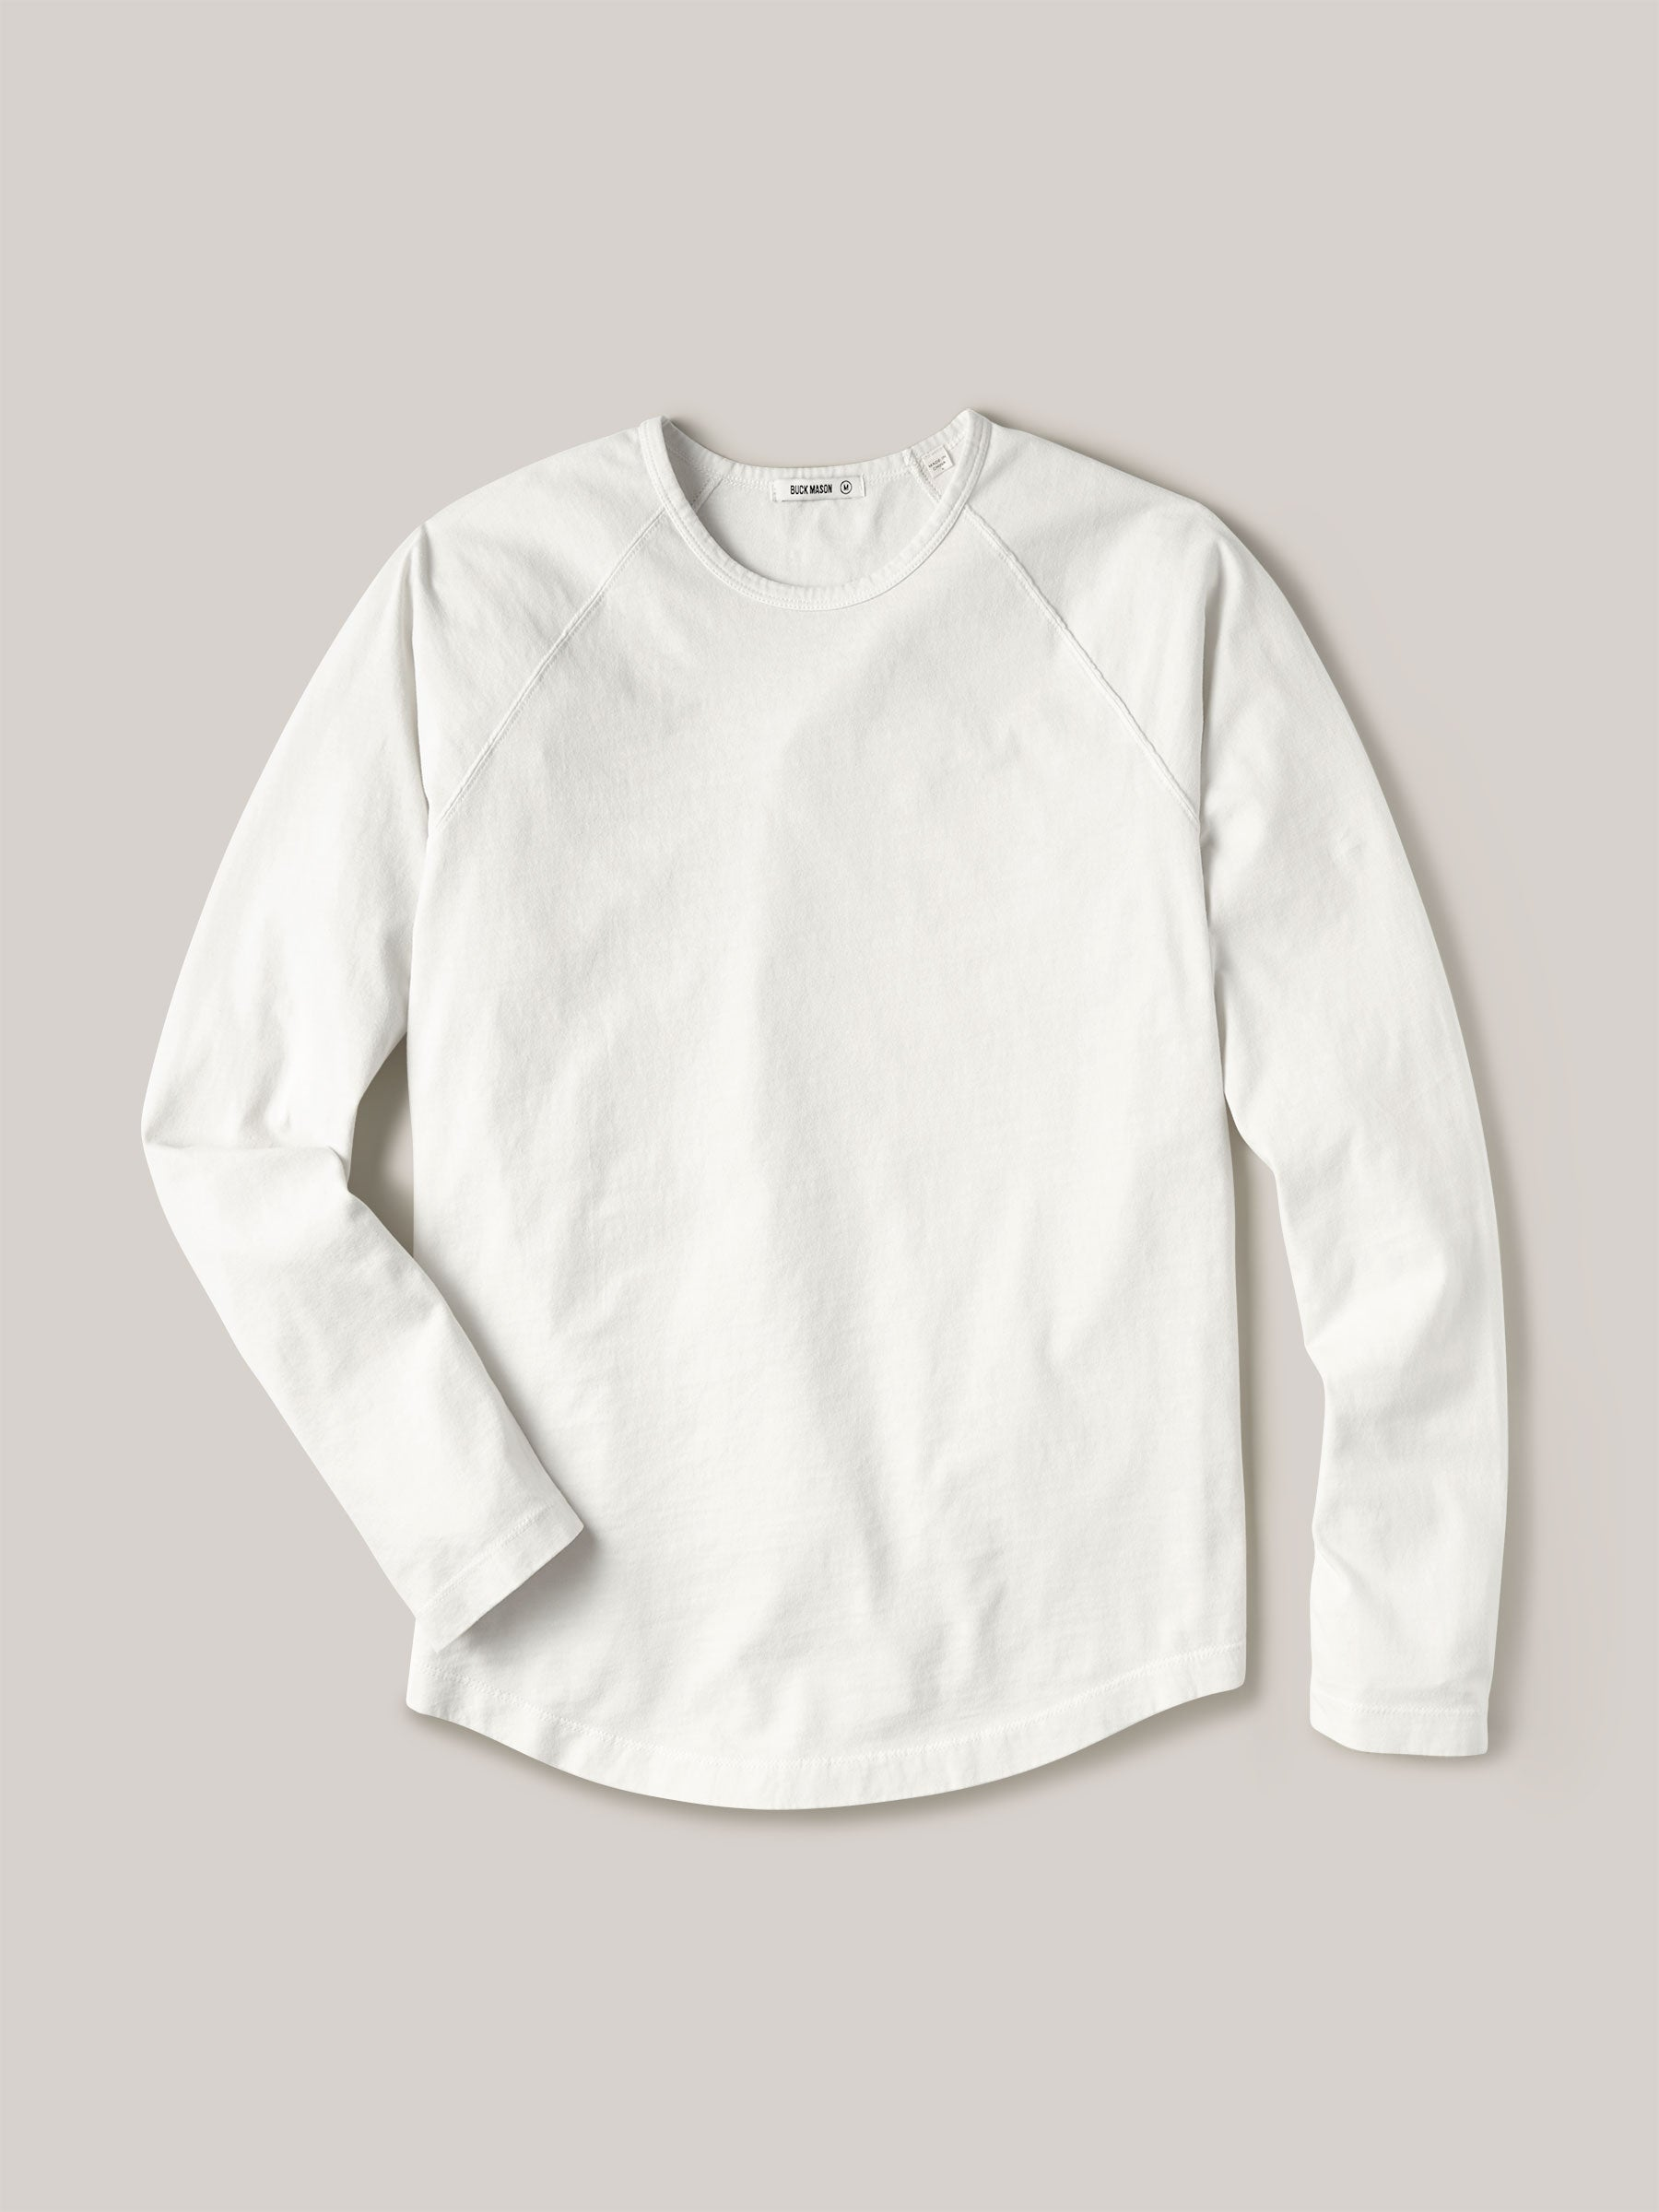 Buck Mason - White Sueded Cotton Long Sleeve Raglan Tee